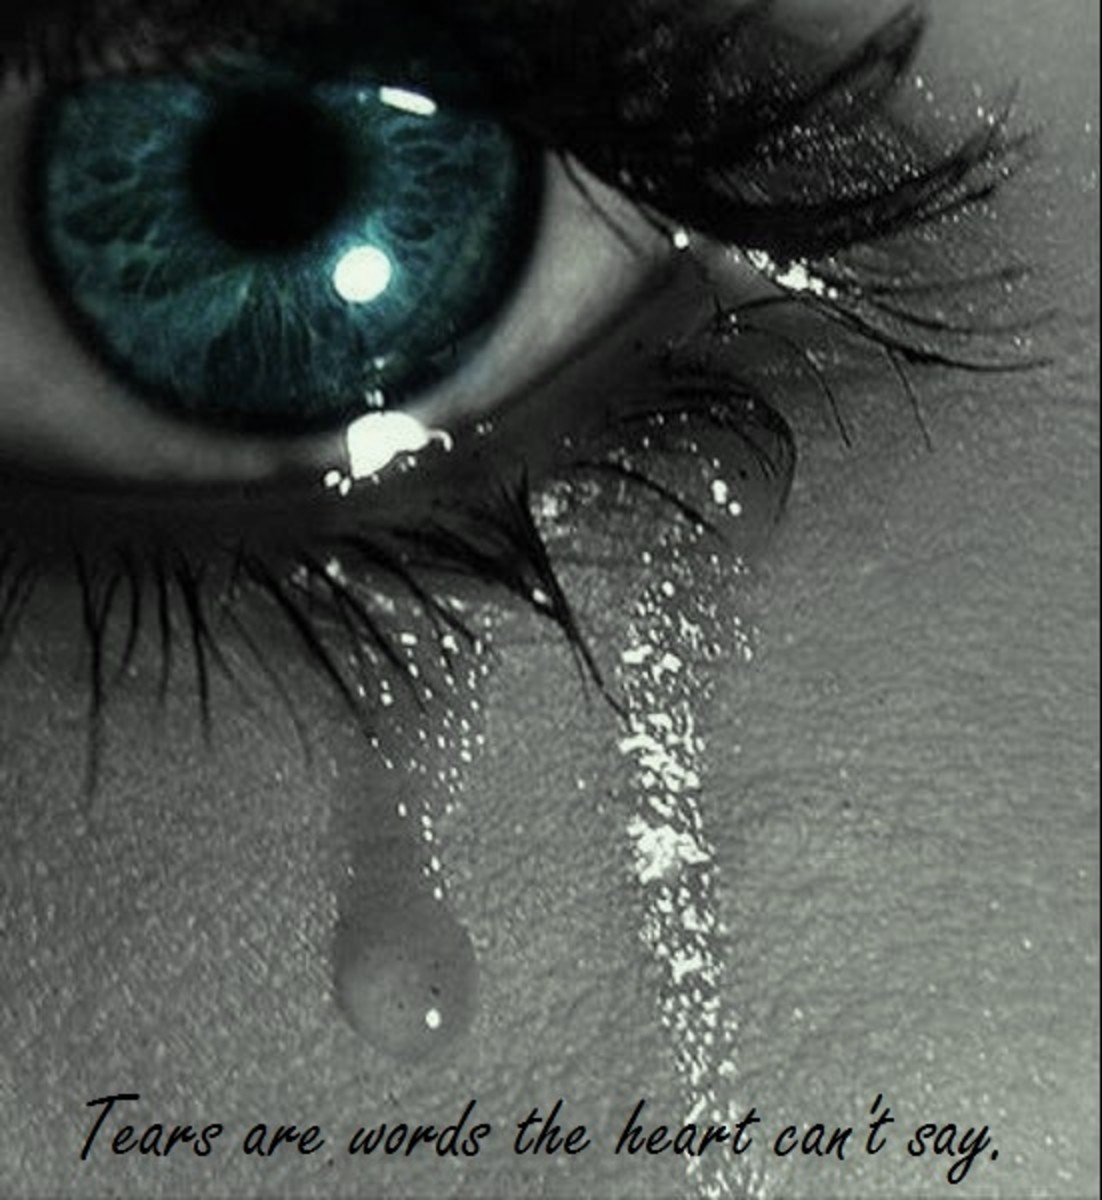 The Importance of Tears; Tears Drops that Flows from the Eyes Represent So Much More than Sadness